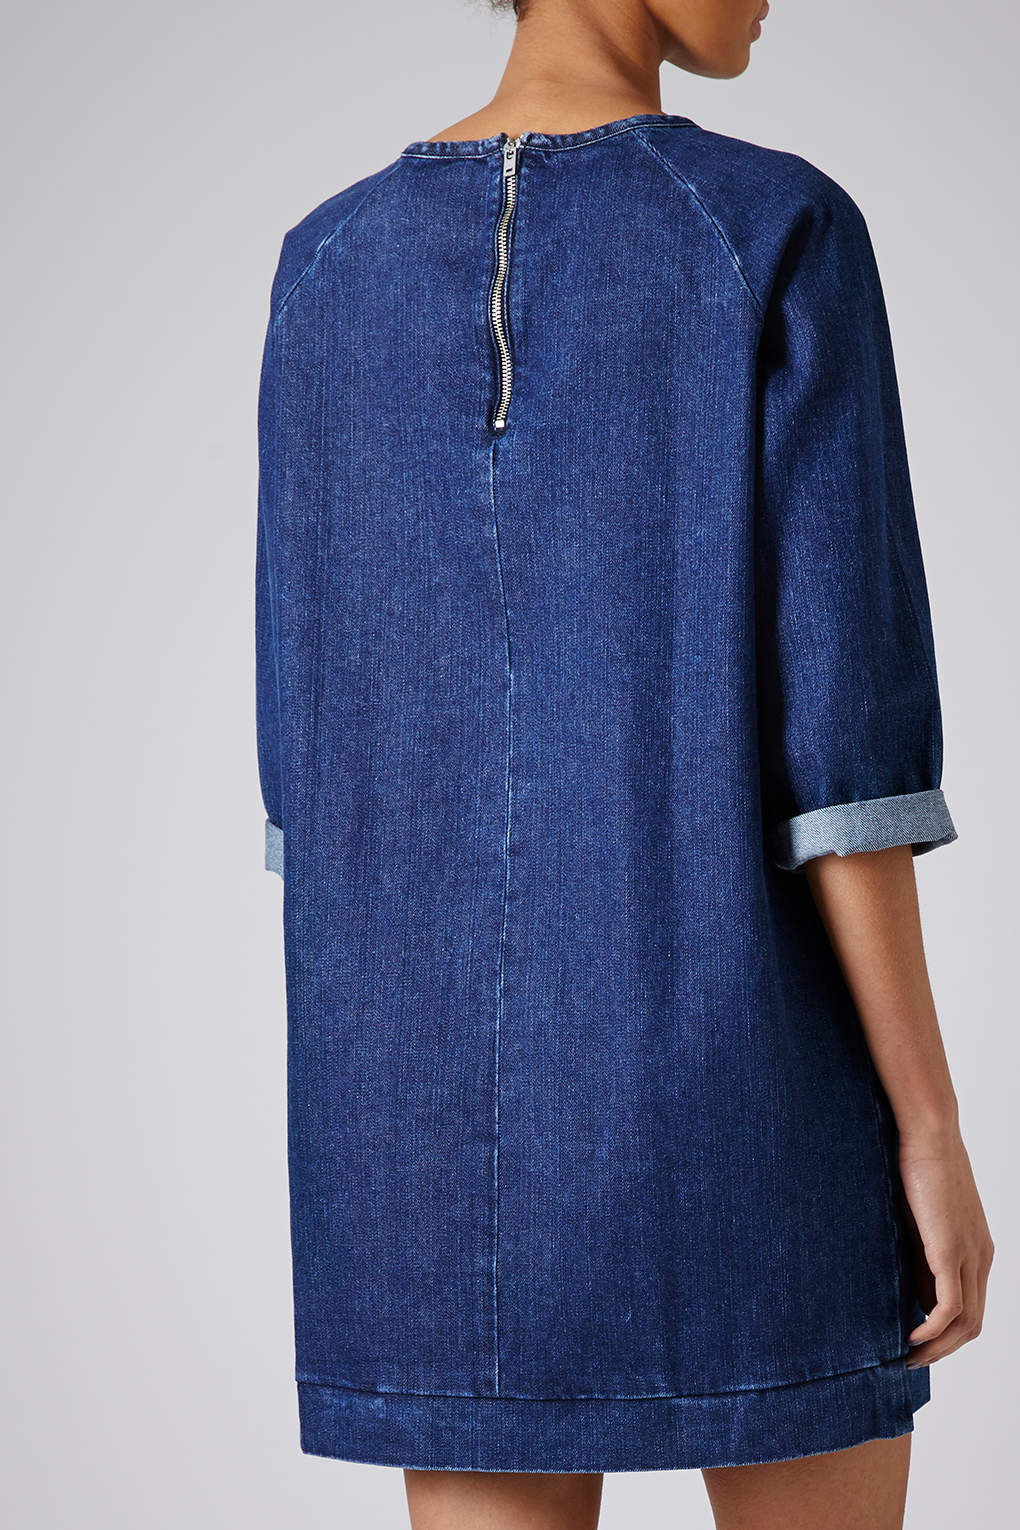 Topshop moto denim jumper dress in blue lyst for Womens denim shirts topshop